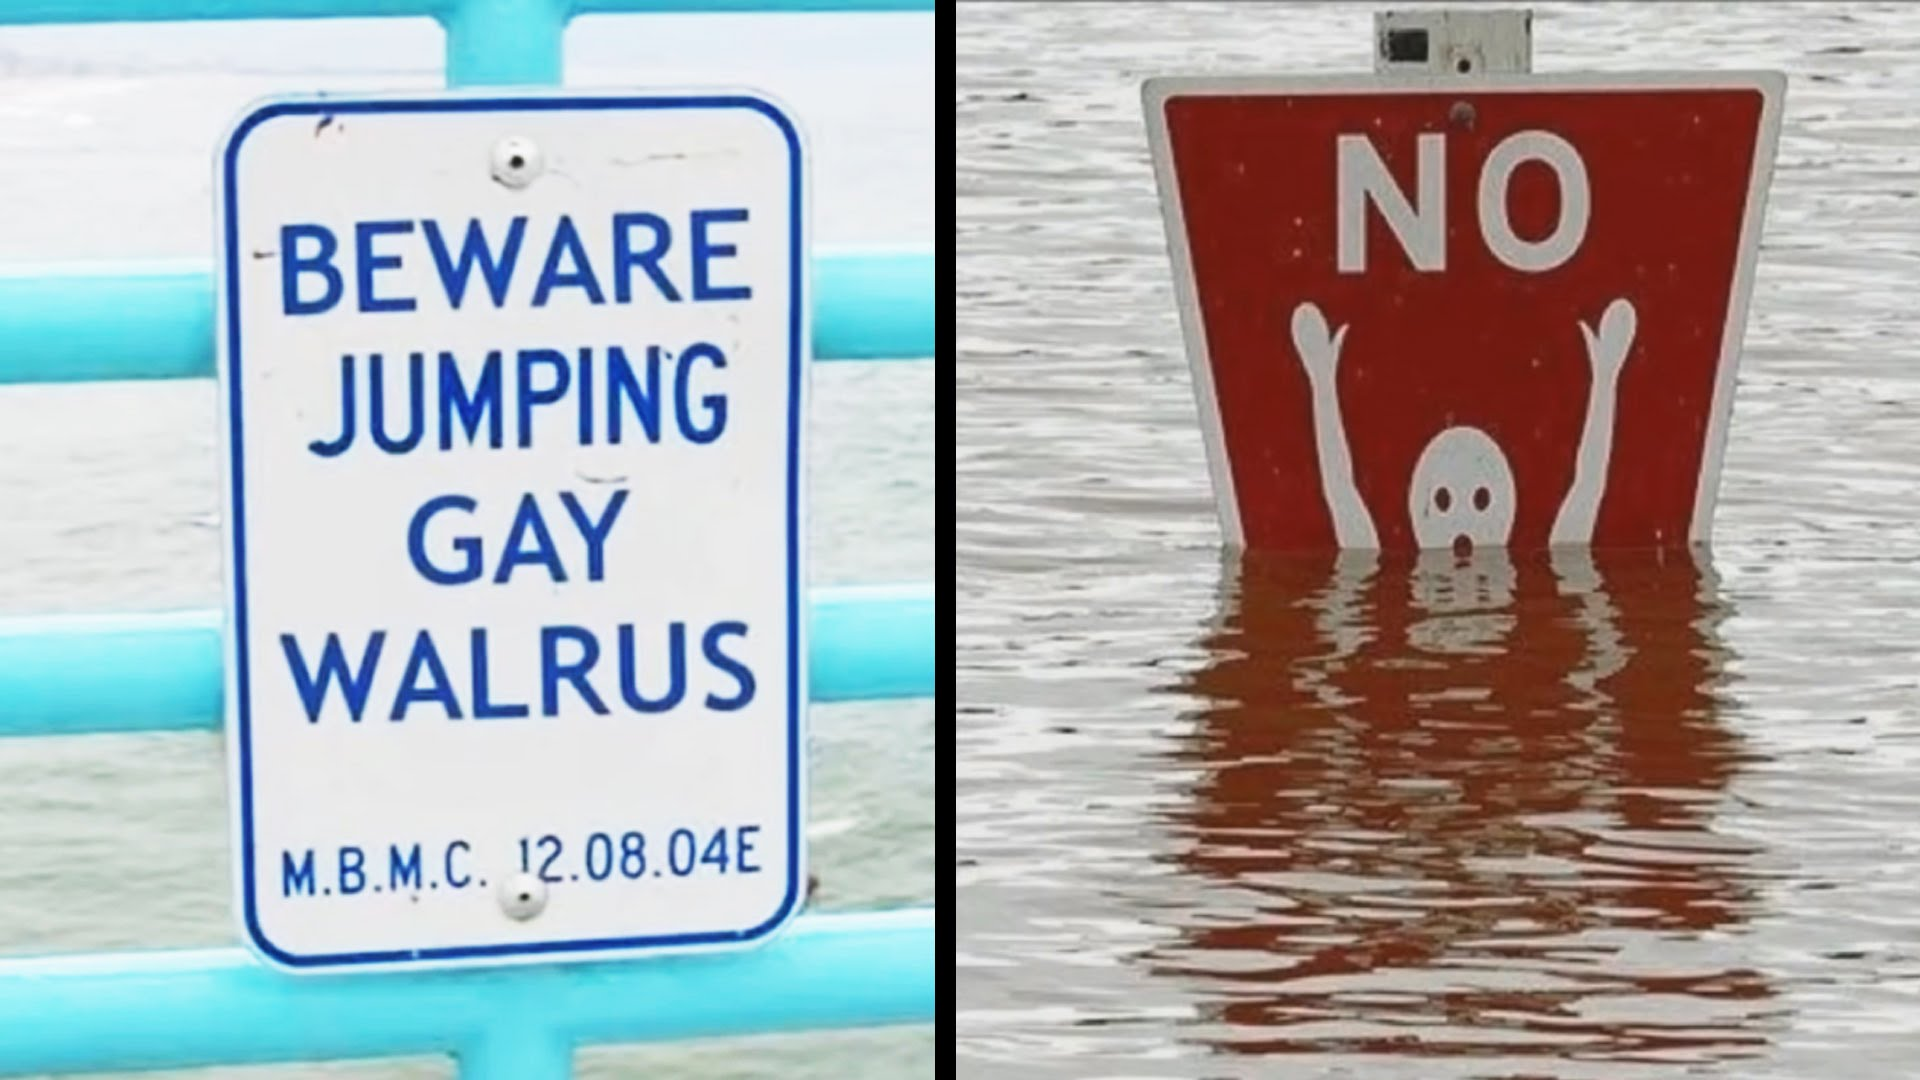 Funny sign photo